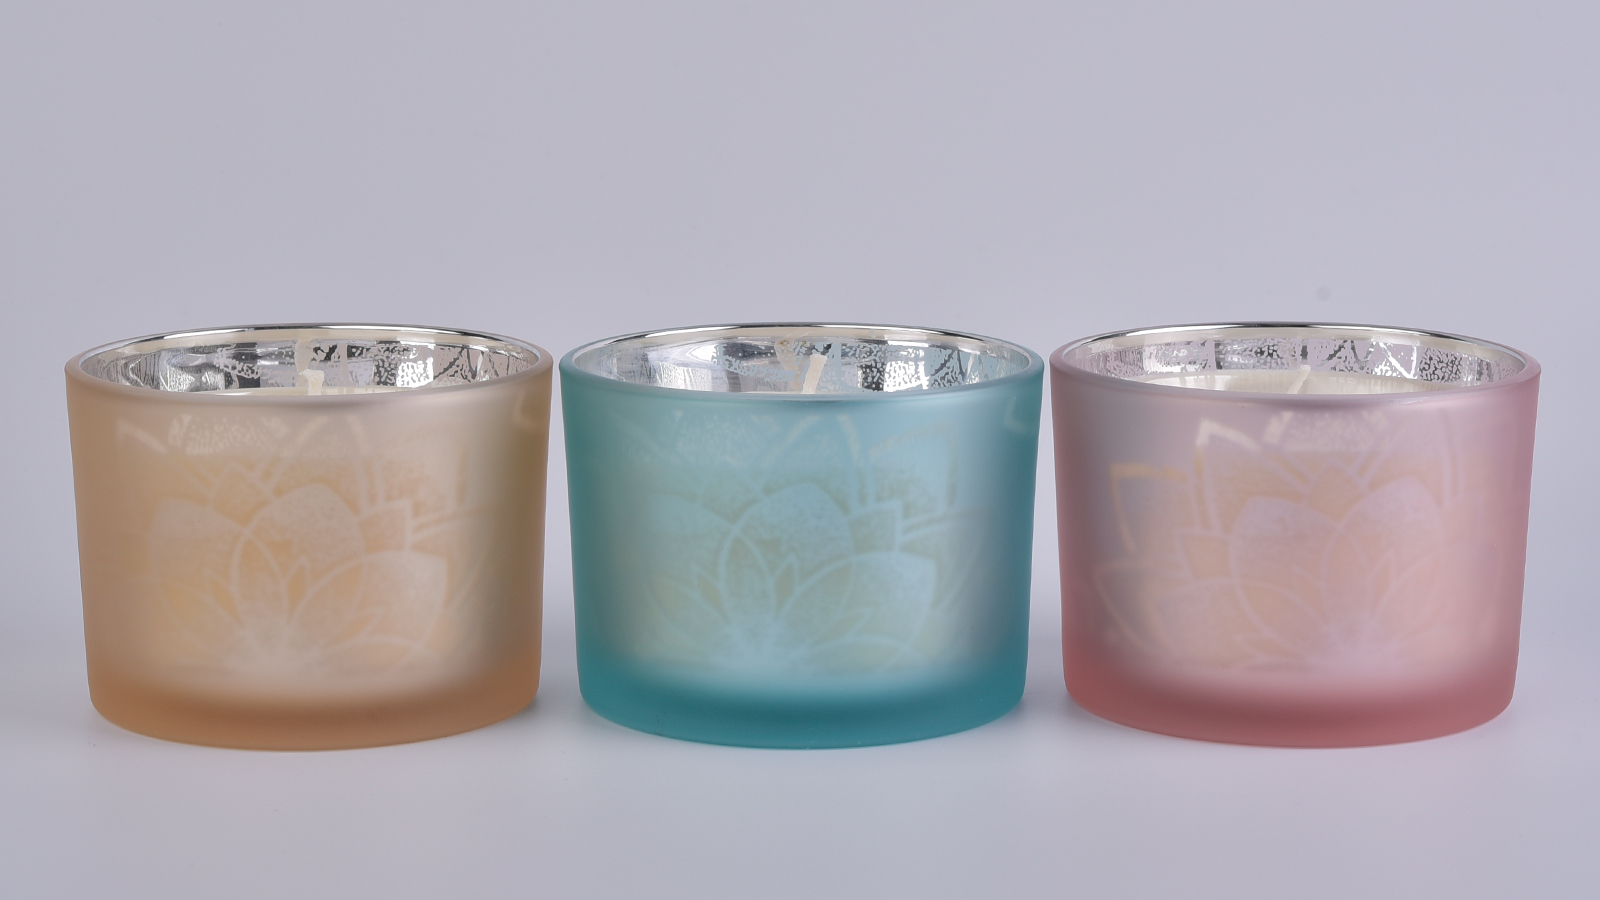 17oz Empty Glass Candle Container with lid Wholesale